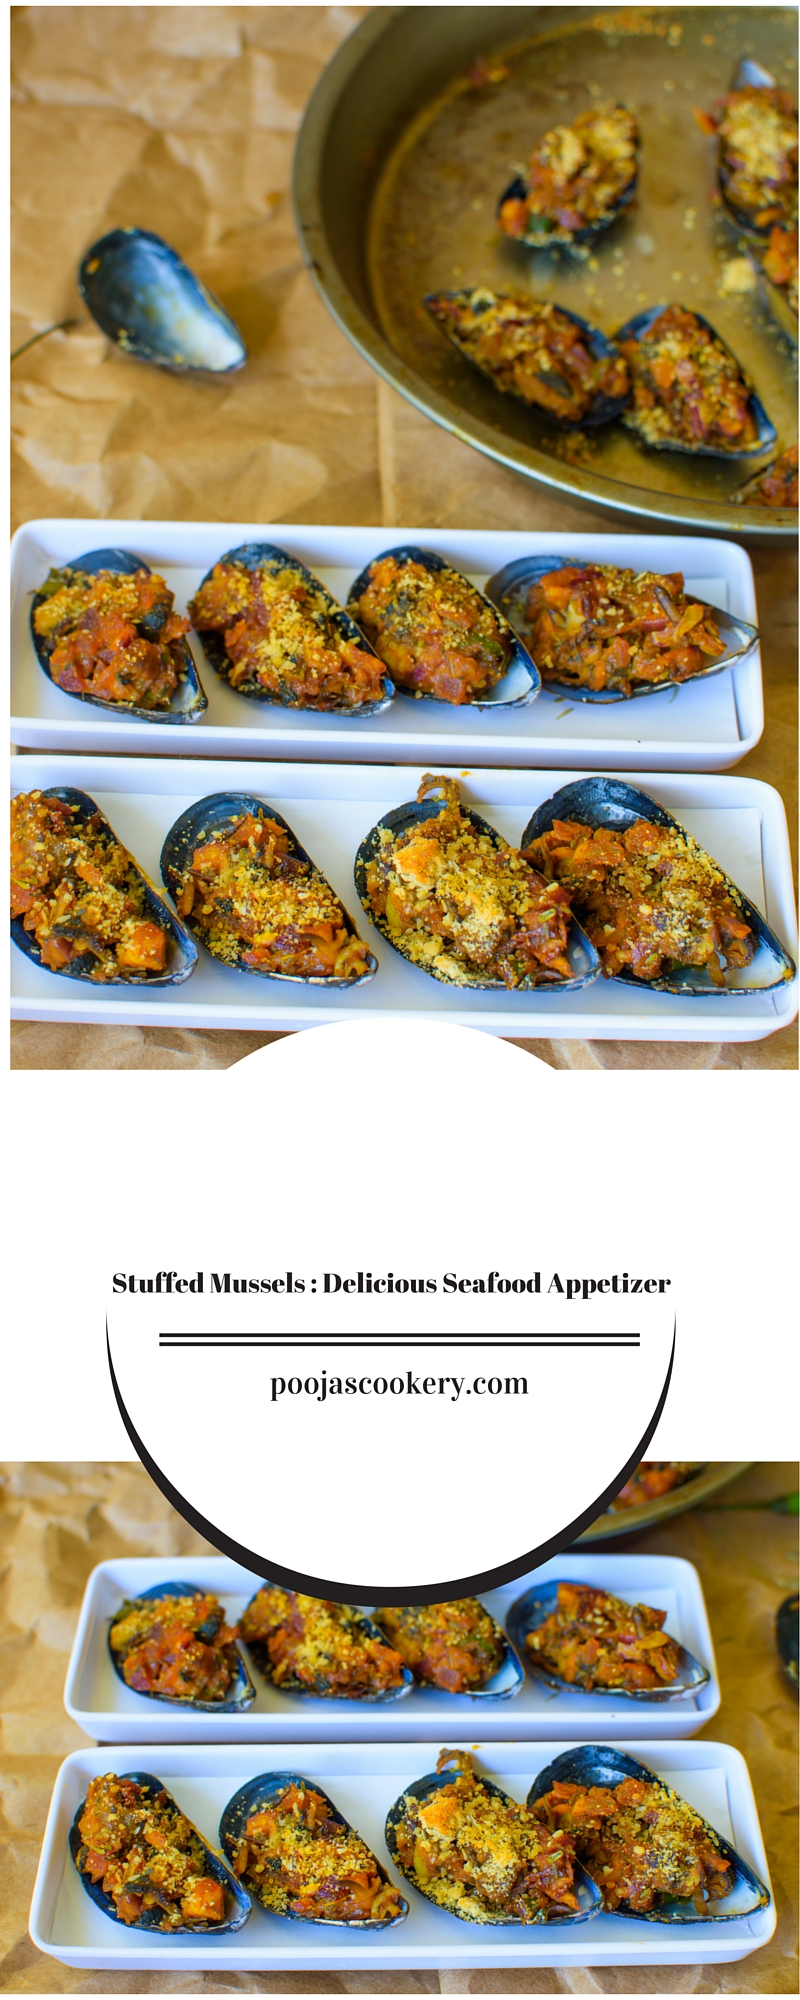 how to cook stuffed mussels